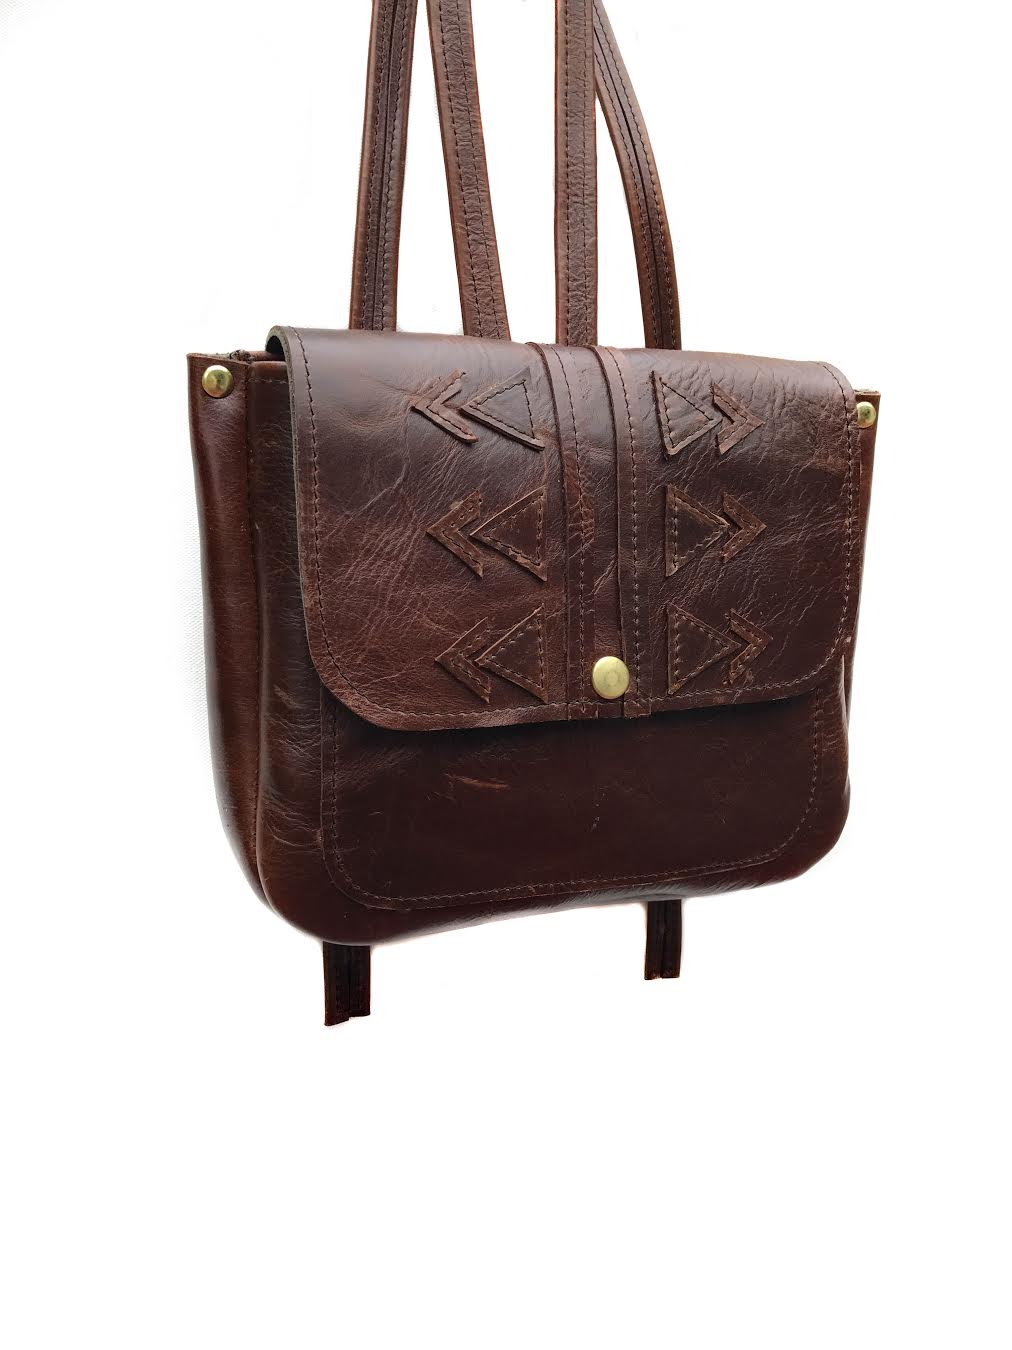 On the Road Backpack in Tobacco Brown  *sold